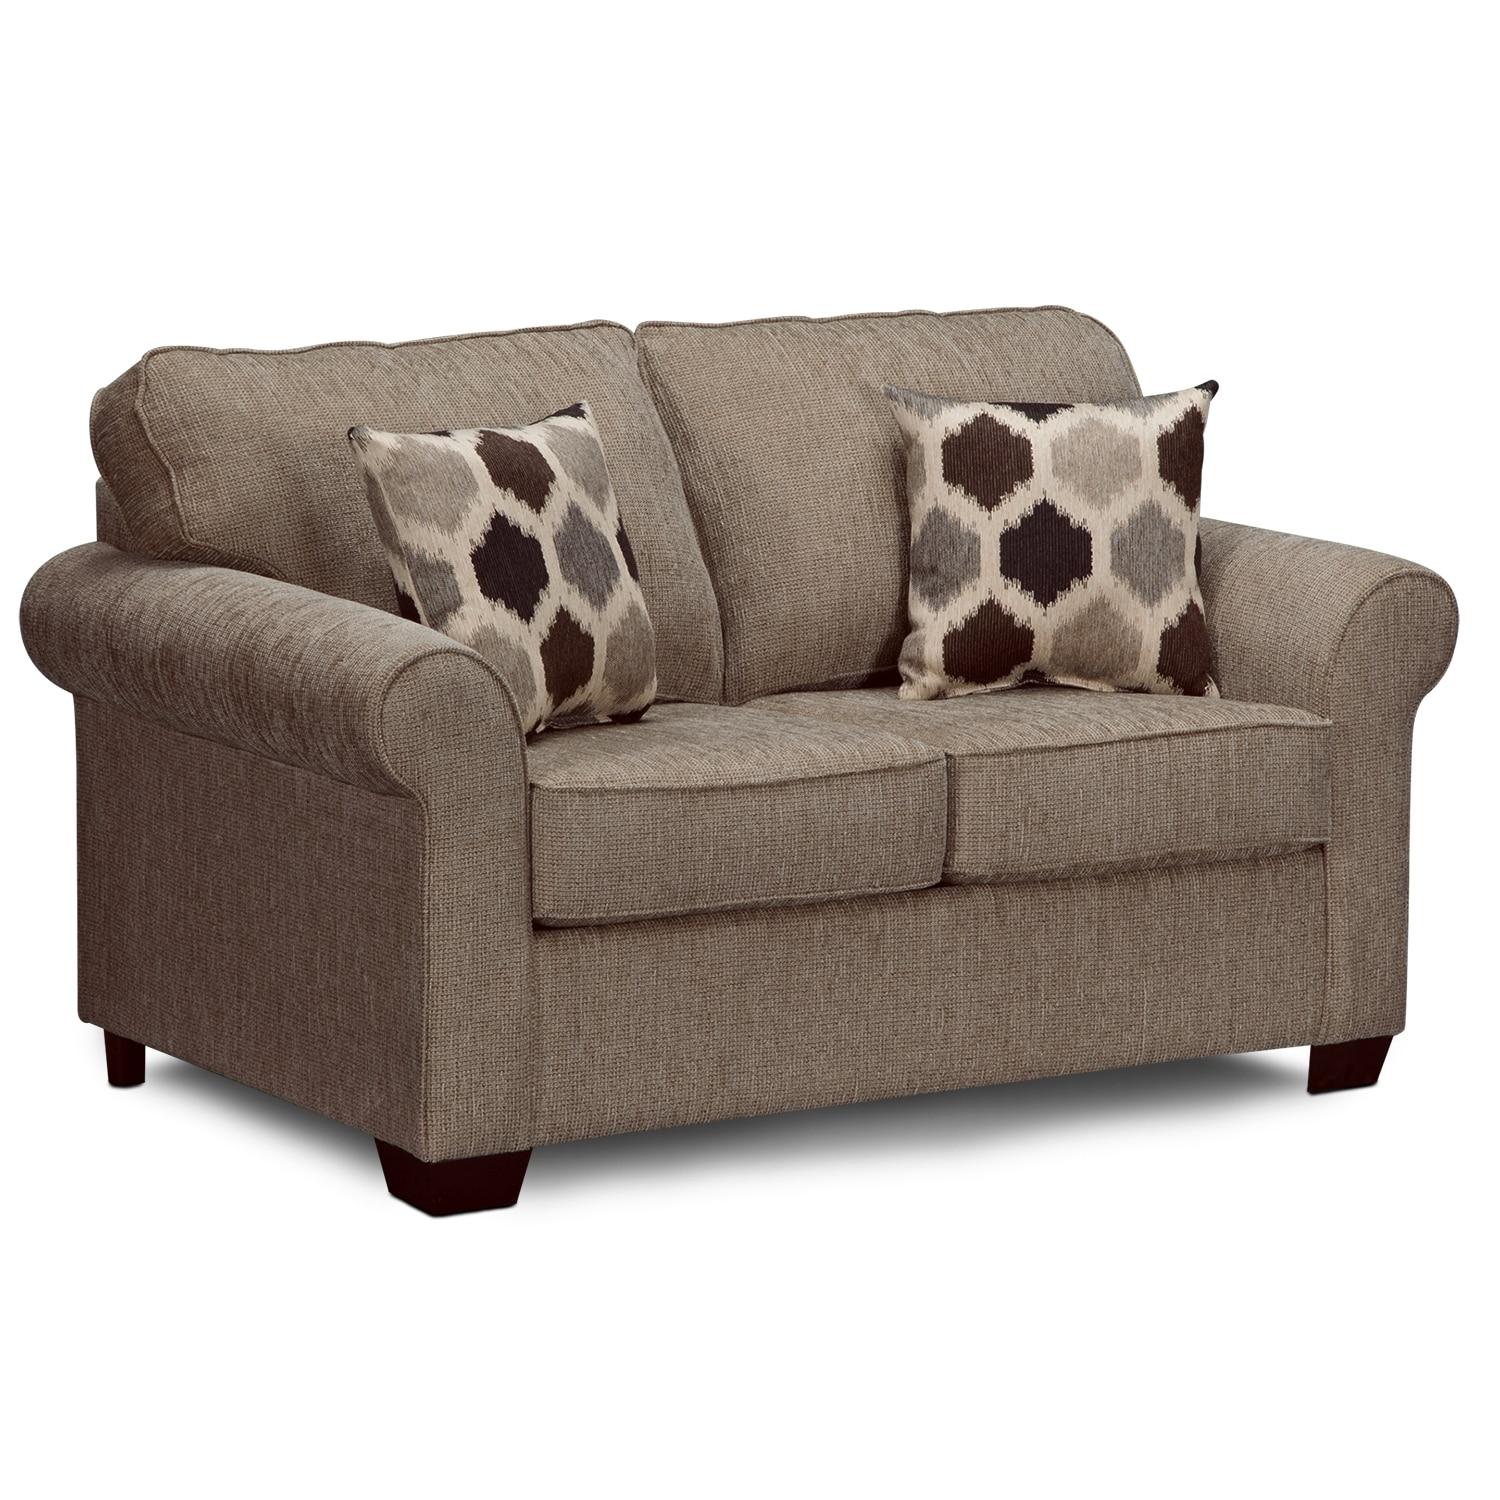 Fletcher Upholstery Twin Sleeper Sofa Value City Furniture